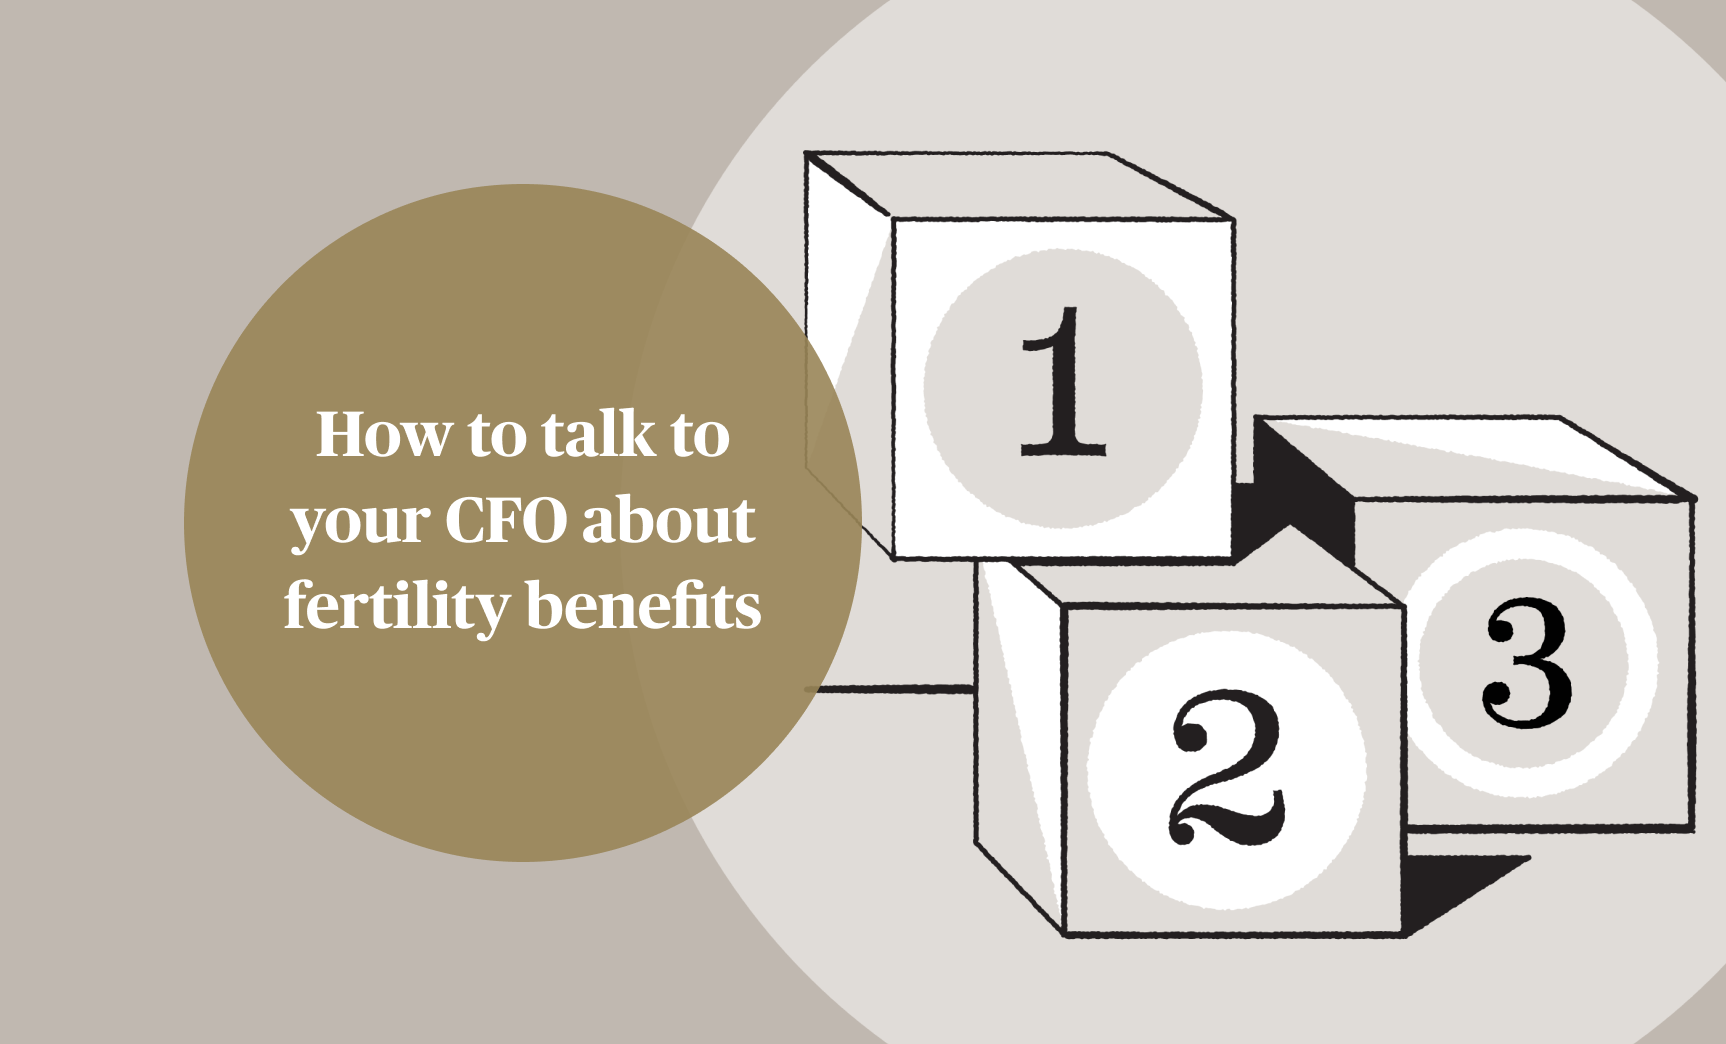 How to talk to your CFO about fertility benefits